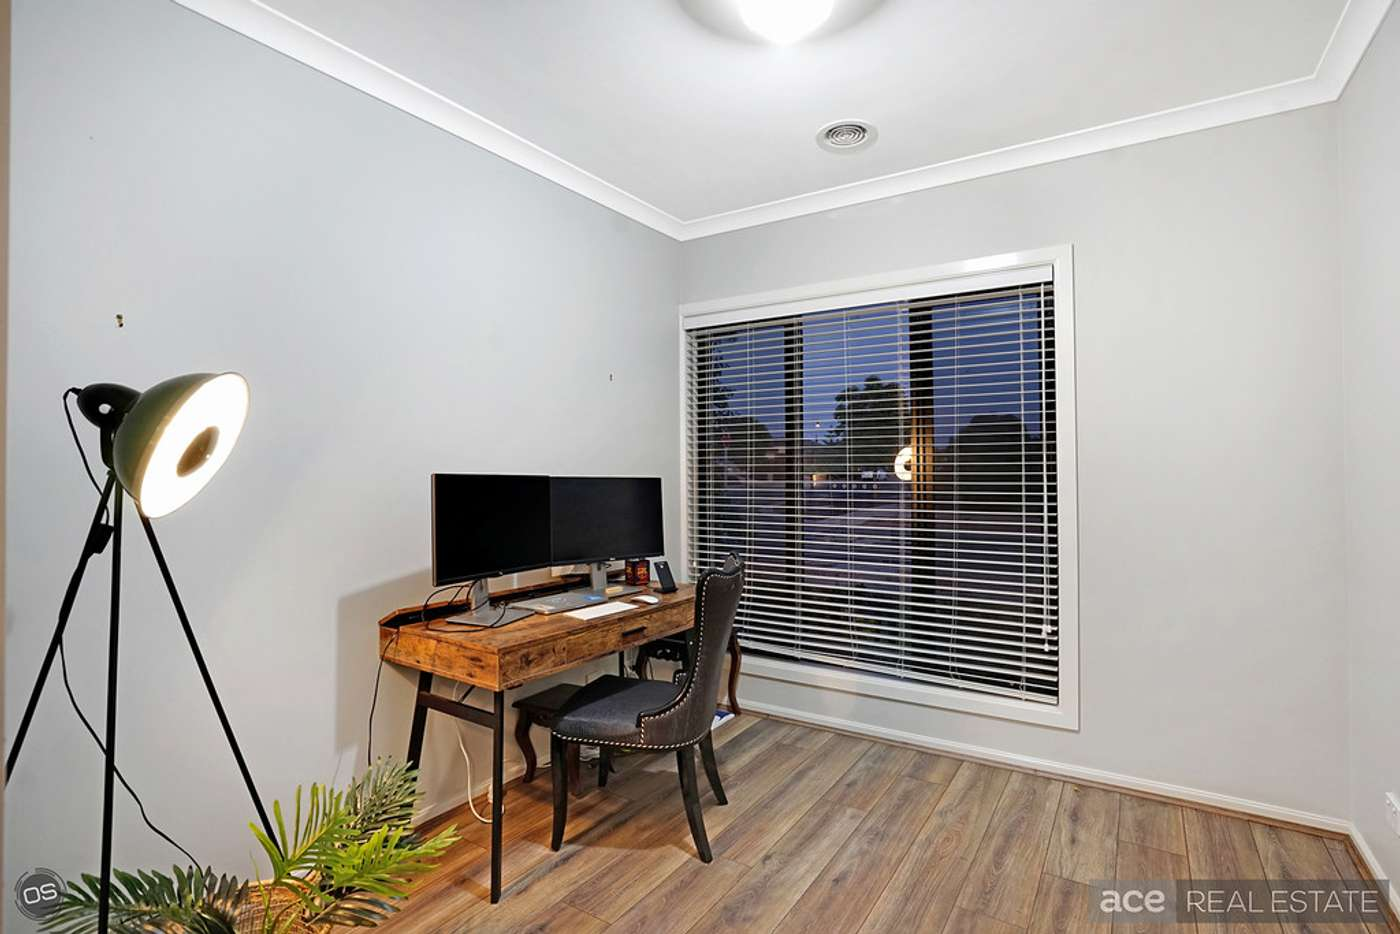 Sixth view of Homely house listing, 2 Whitecaps Avenue, Point Cook VIC 3030